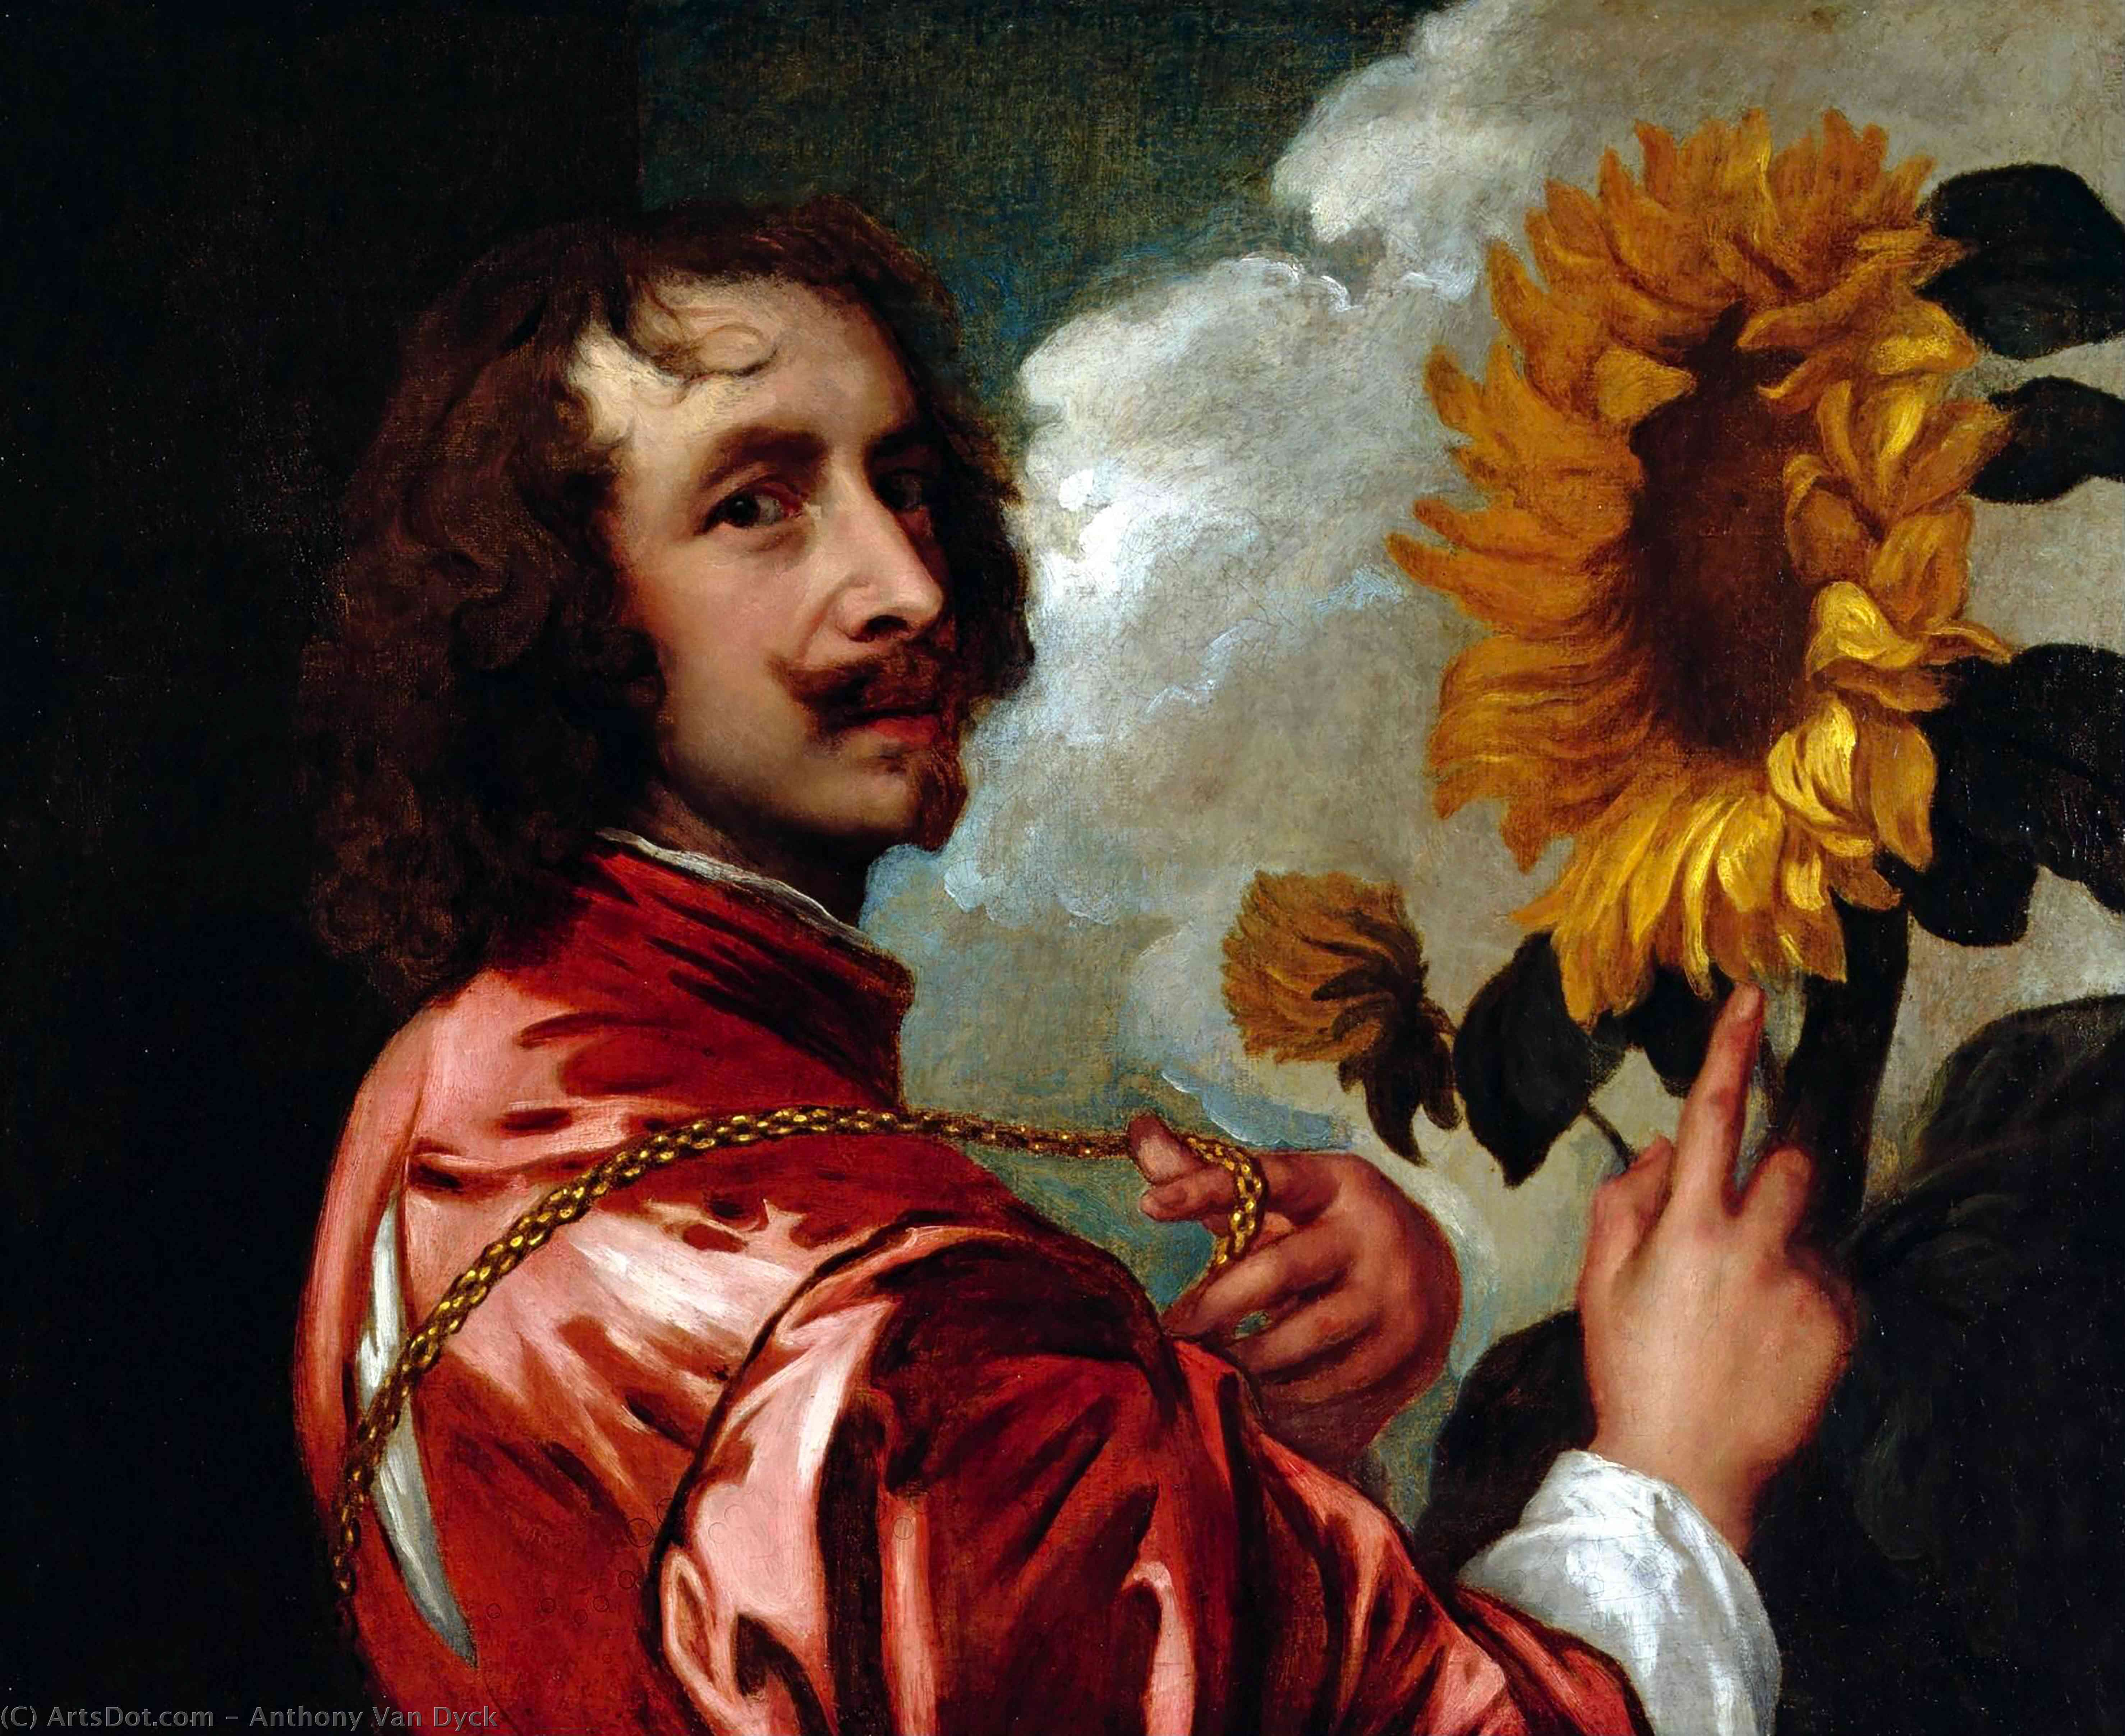 Wikioo.org - The Encyclopedia of Fine Arts - Painting, Artwork by Anthony Van Dyck - Self-portrait with a Sunflower